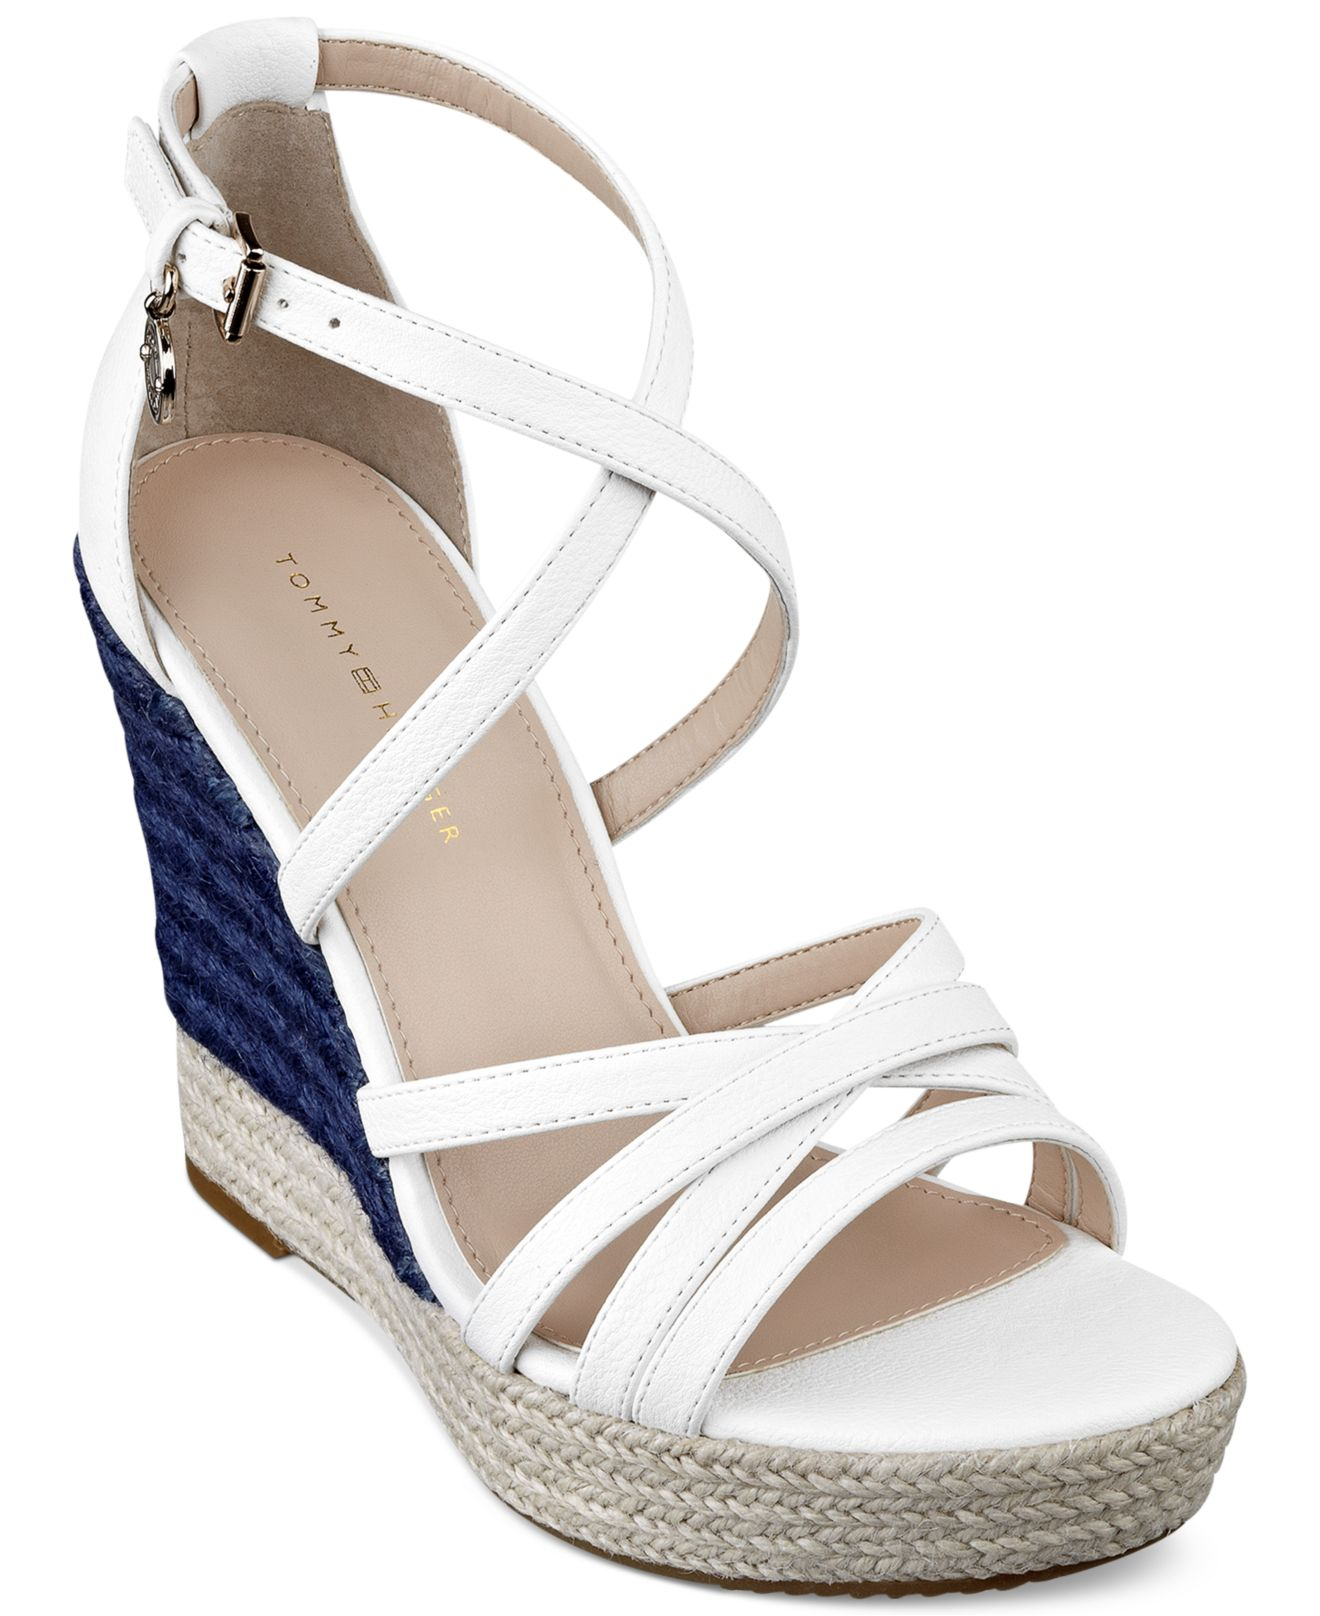 31ed3025d68 Gallery. Previously sold at  Macy s · Women s White Platform Wedges ...